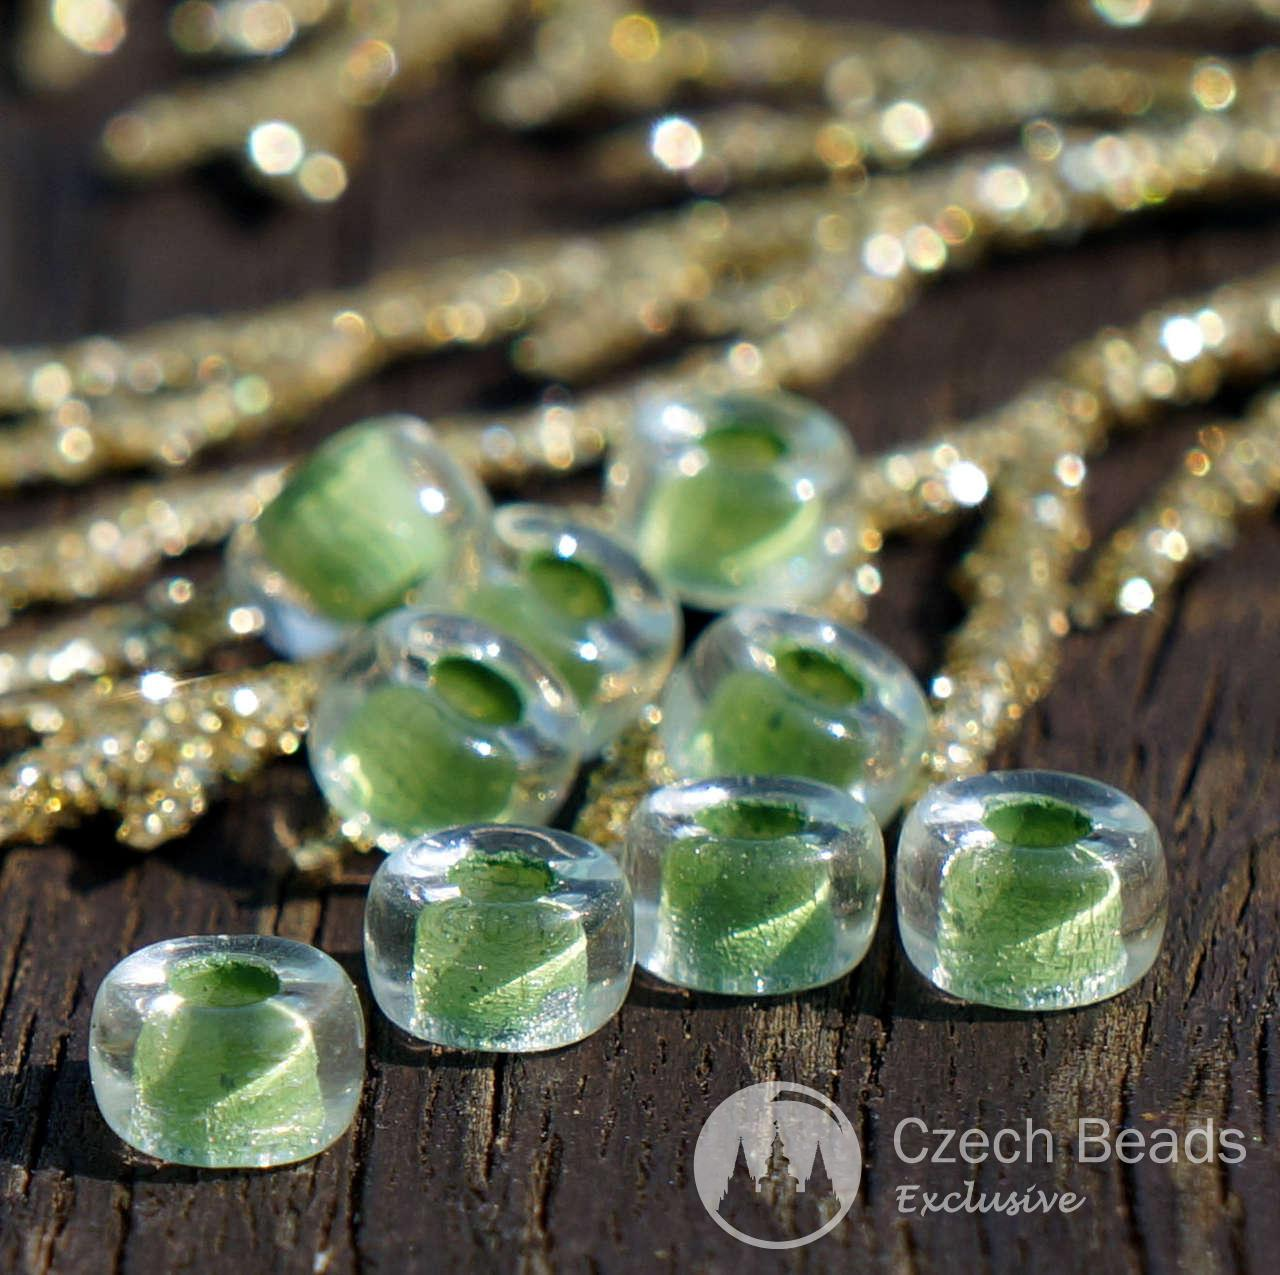 Clear Green Pony Beads Green Ring Beads Green Glass Pony Beads Green Round Czech Glass Beads Roller Beads Glass Crow Beads 6mm x 3mm 50pc